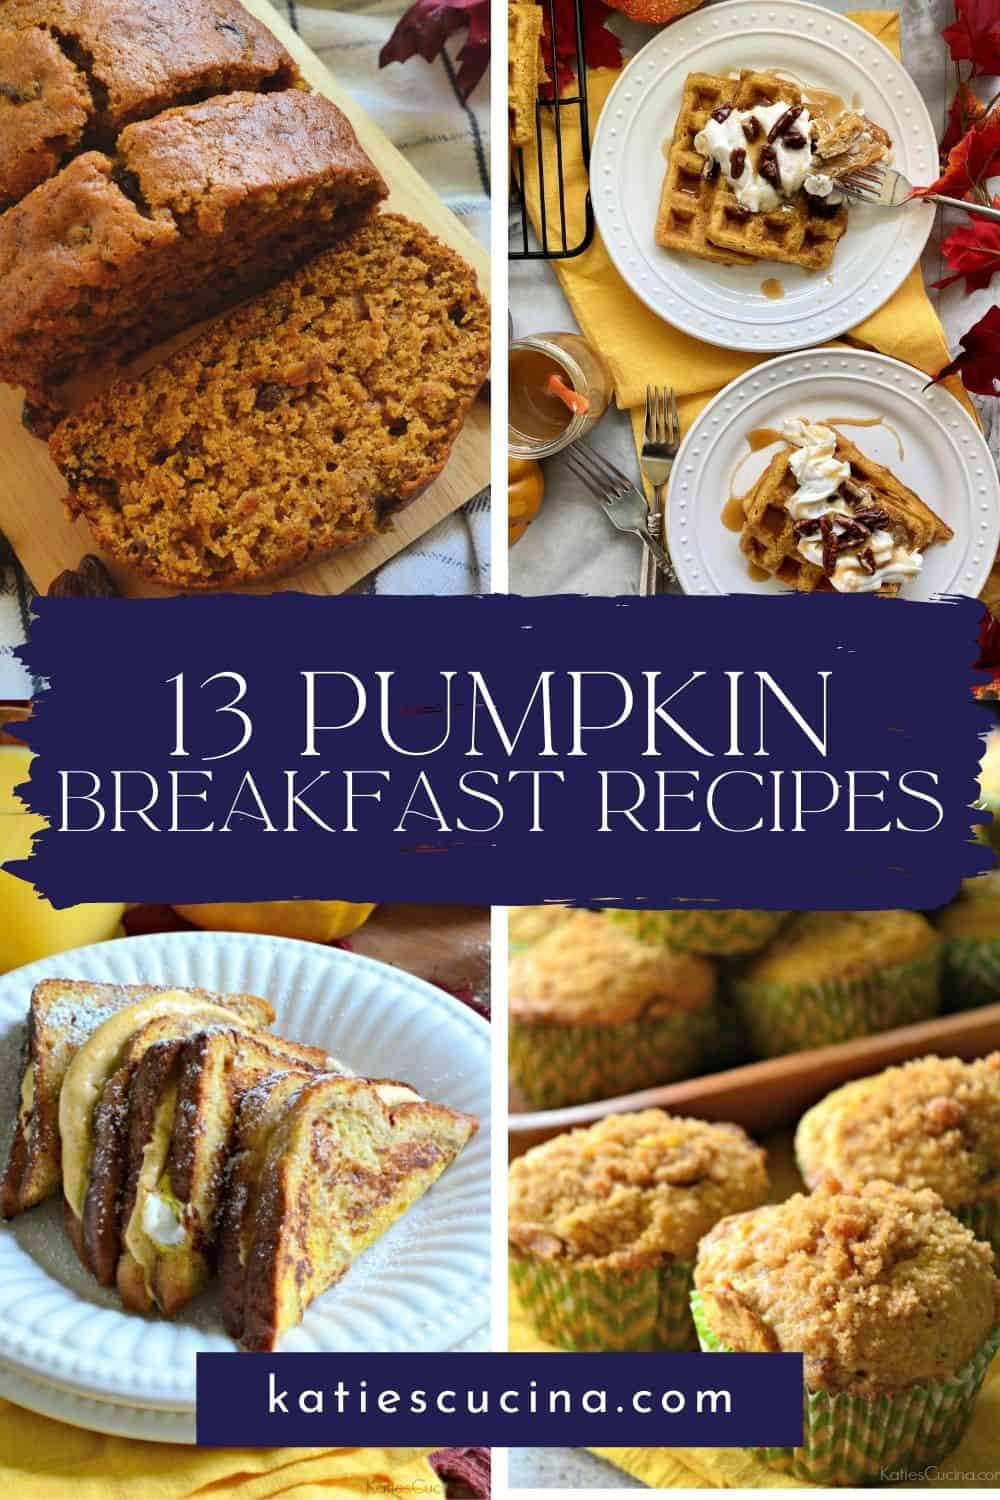 Four photos; bread, waffles, french toast, and muffins divided by text for Pinterest.